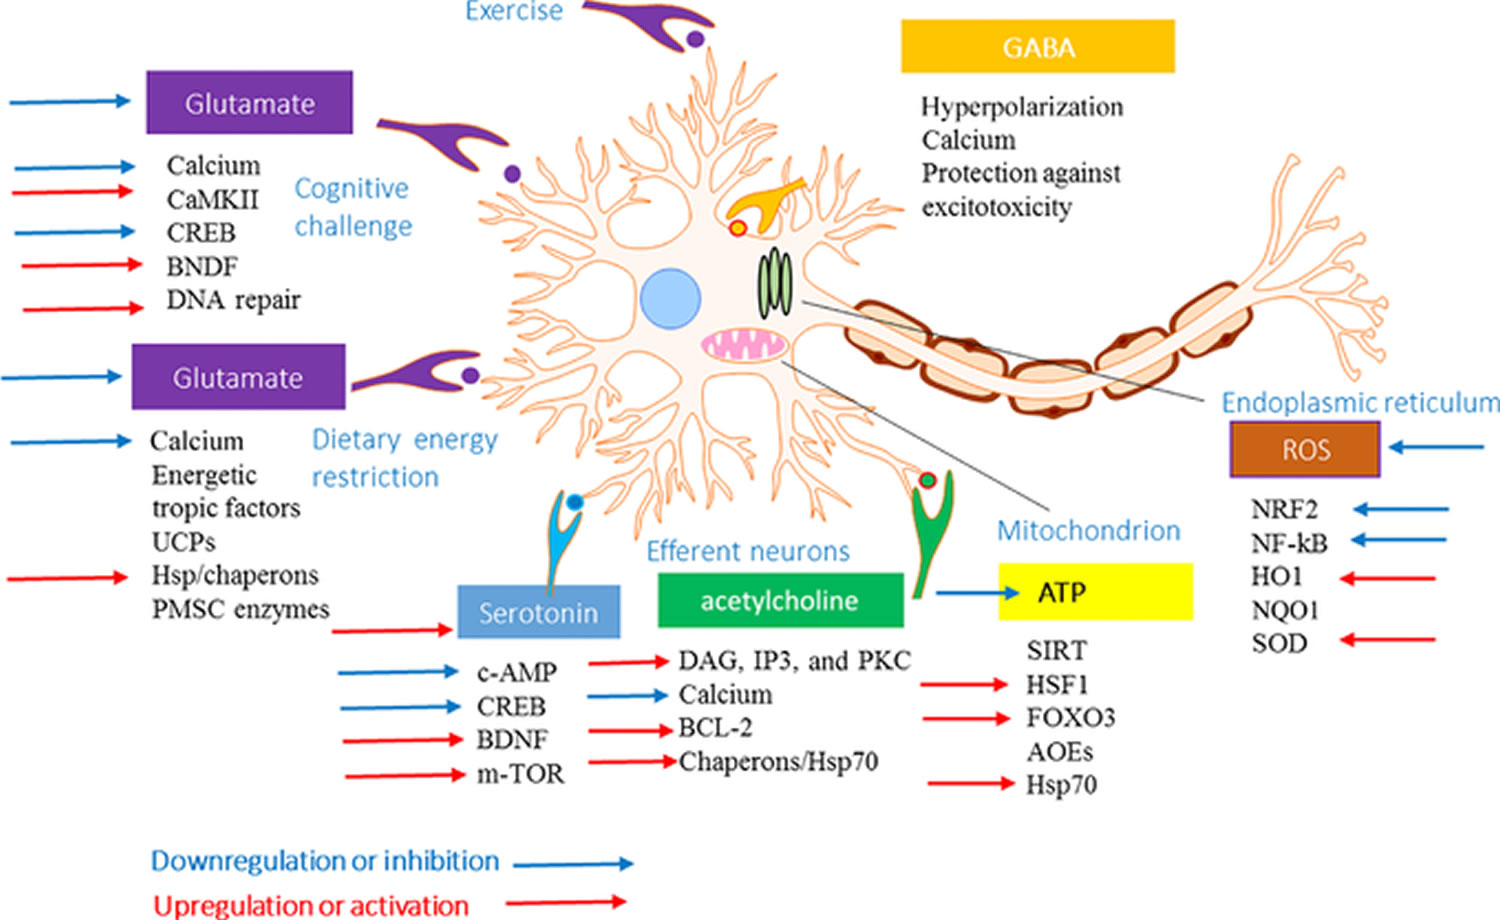 Adaptive stress response and effects of adaptogens